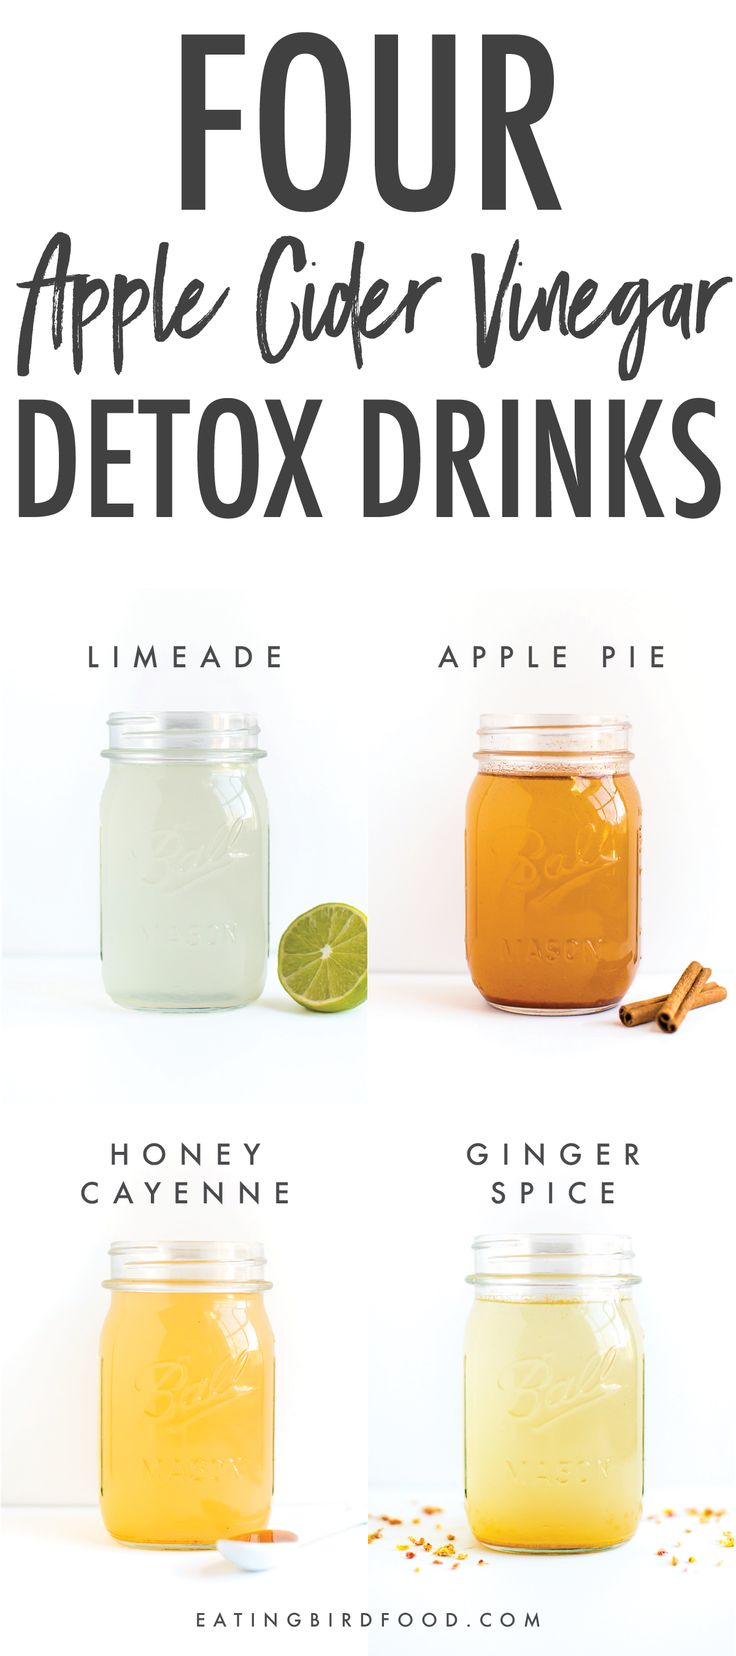 Apple cidervinegar detox drinks you'll actually enjoy drinking. Four flavors including: Limeade, Ginger Spice, Honey Cayenne and Apple Pie.